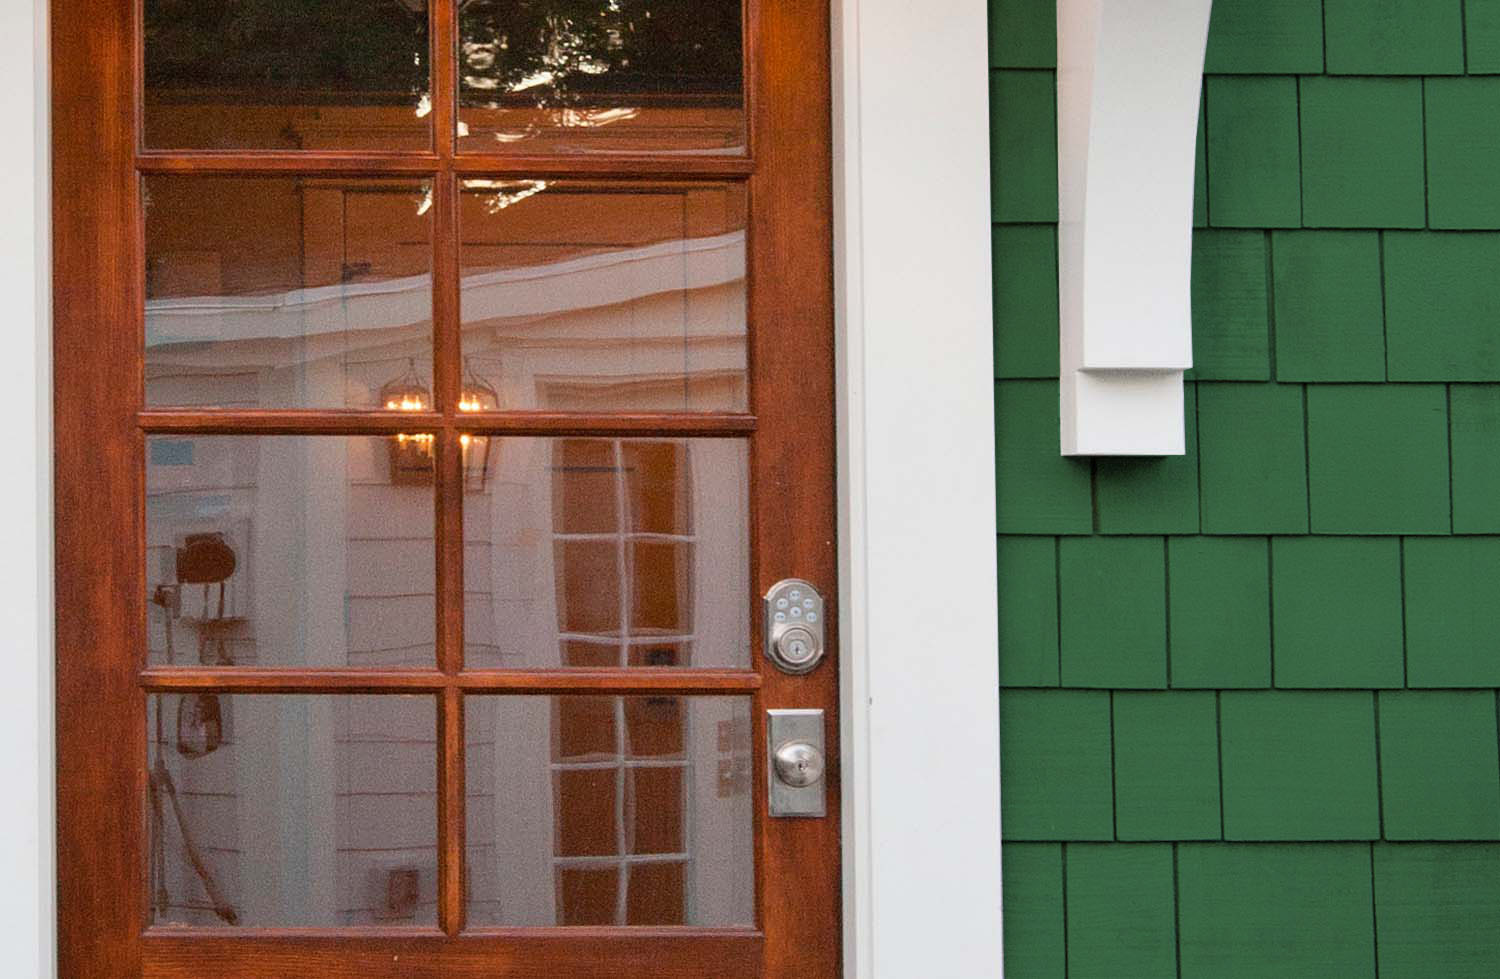 Green cedar shake siding with white trim and a real wood front door.